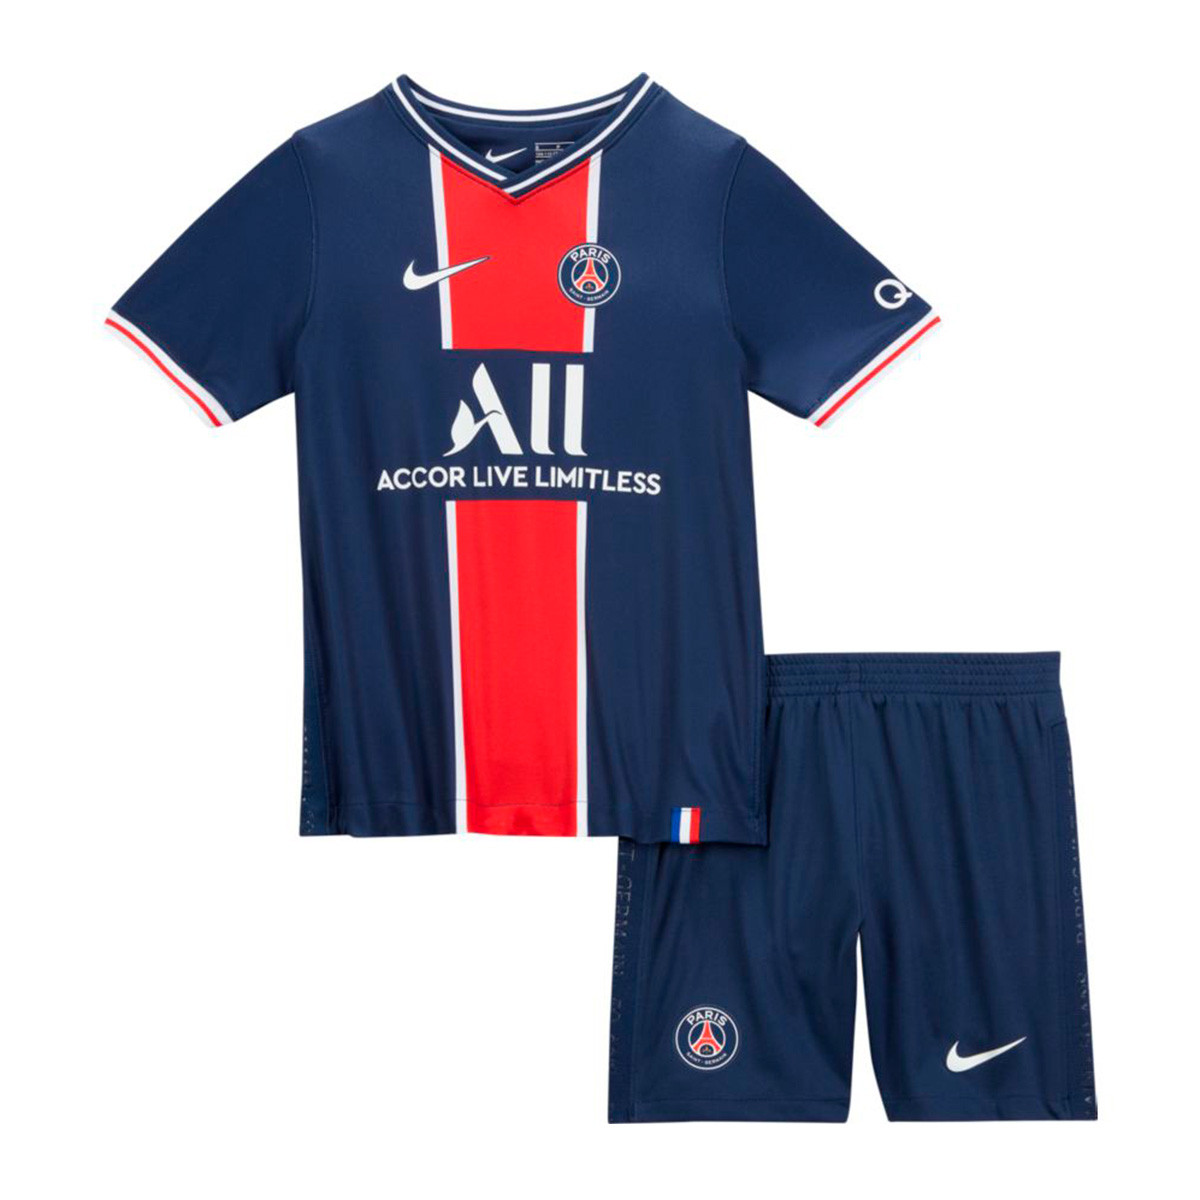 Kit Nike Paris Saint Germain Primera Equipacion 2020 2021 Nino Midnight Navy White Football Store Futbol Emotion